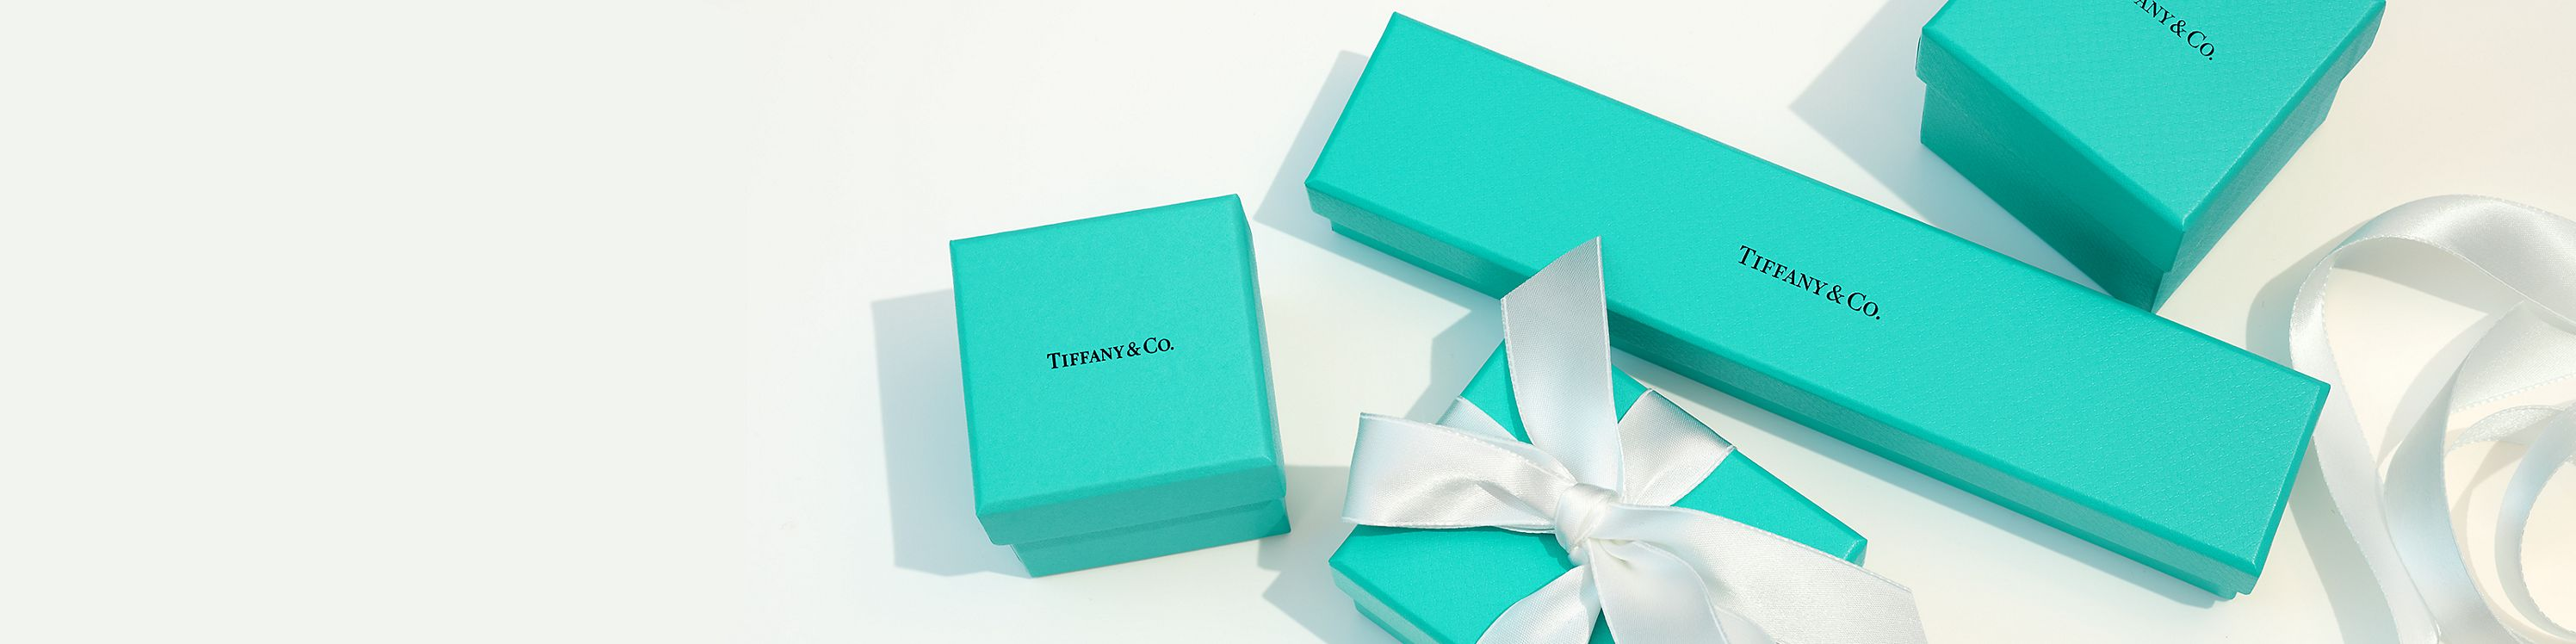 Scopri e acquista i regali Tiffany & Co. per la Festa del Papà